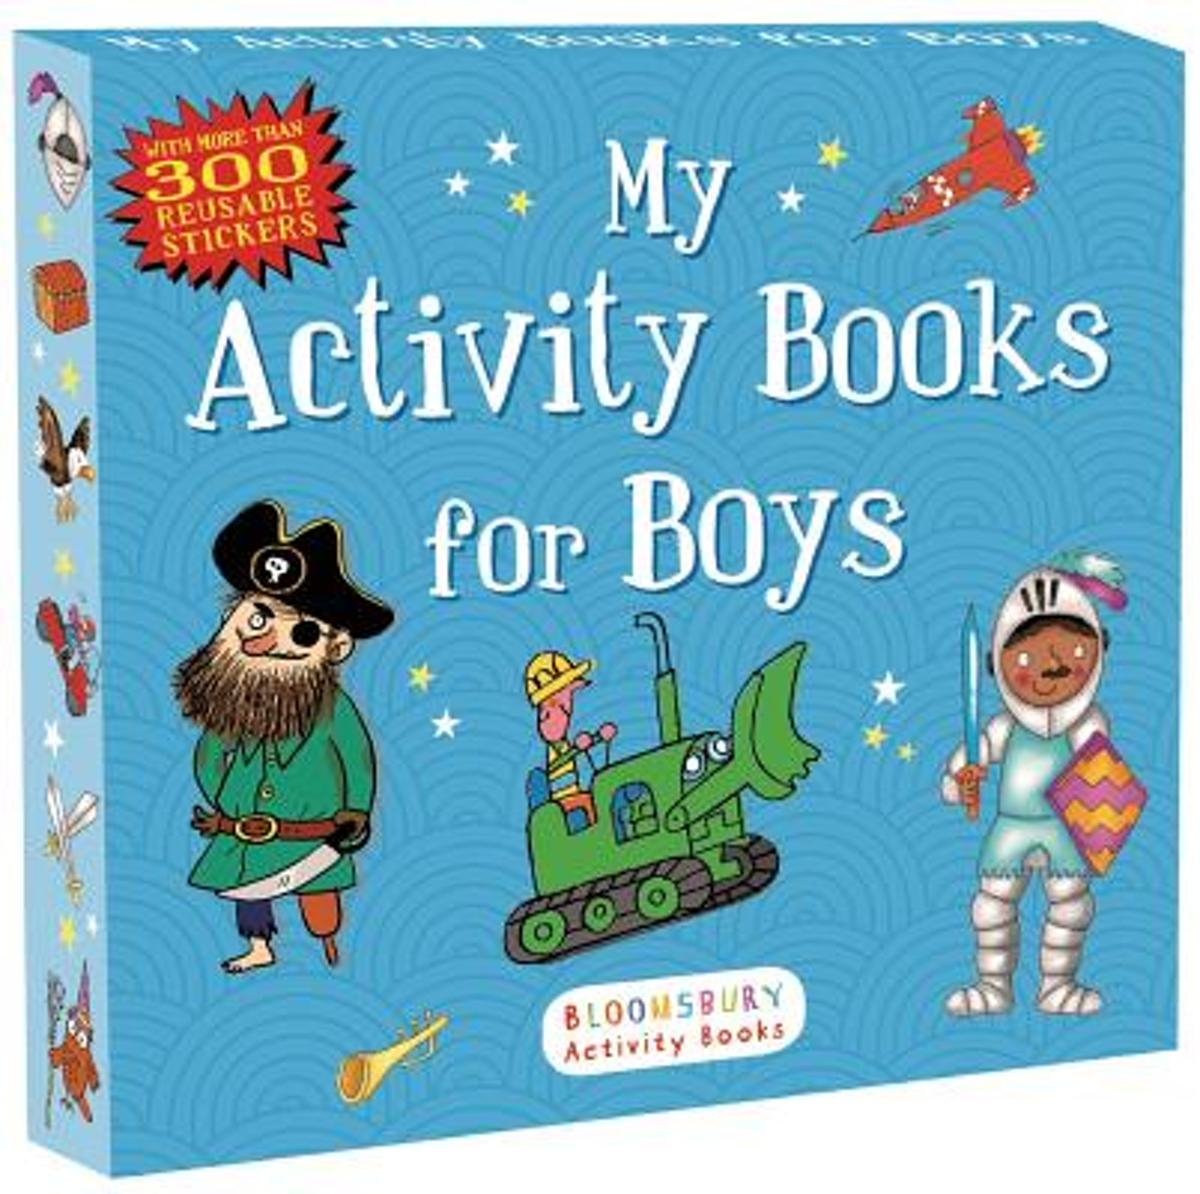 My Activity Books for Boys